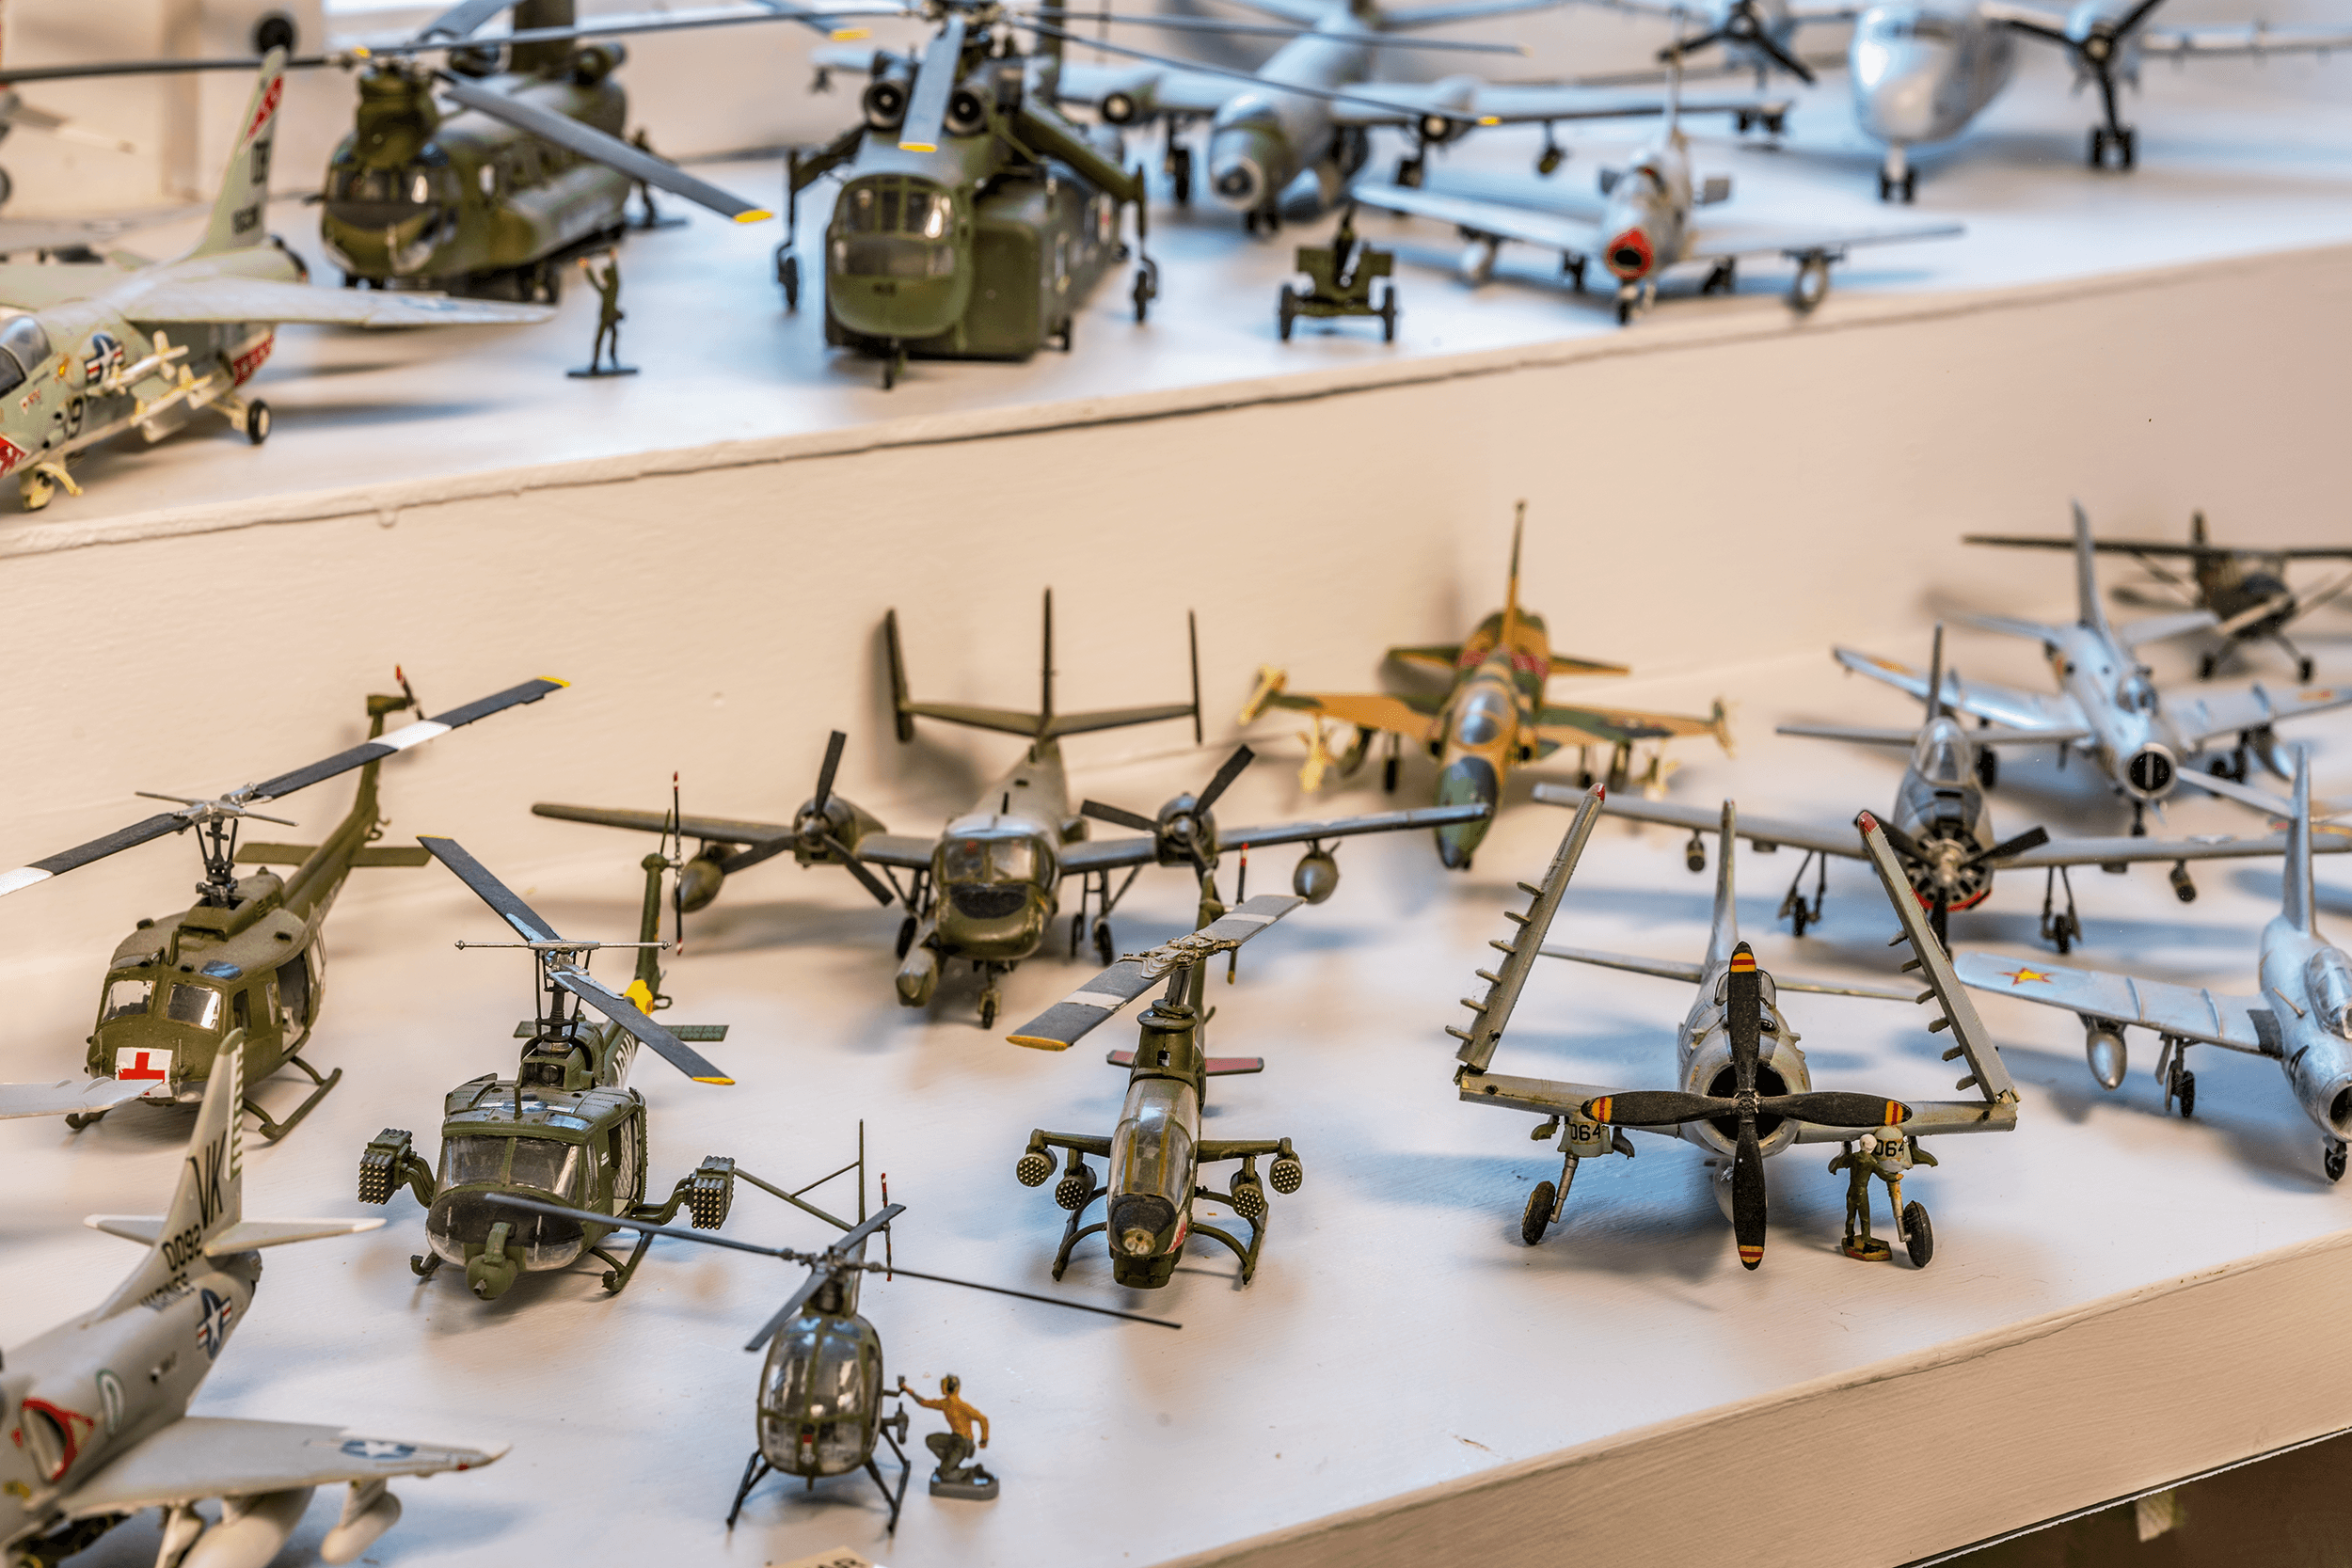 The hundreds of scale model airplanes covering a century of aviation history were built by a U.S. Air Force retiree and then donated to the museum.